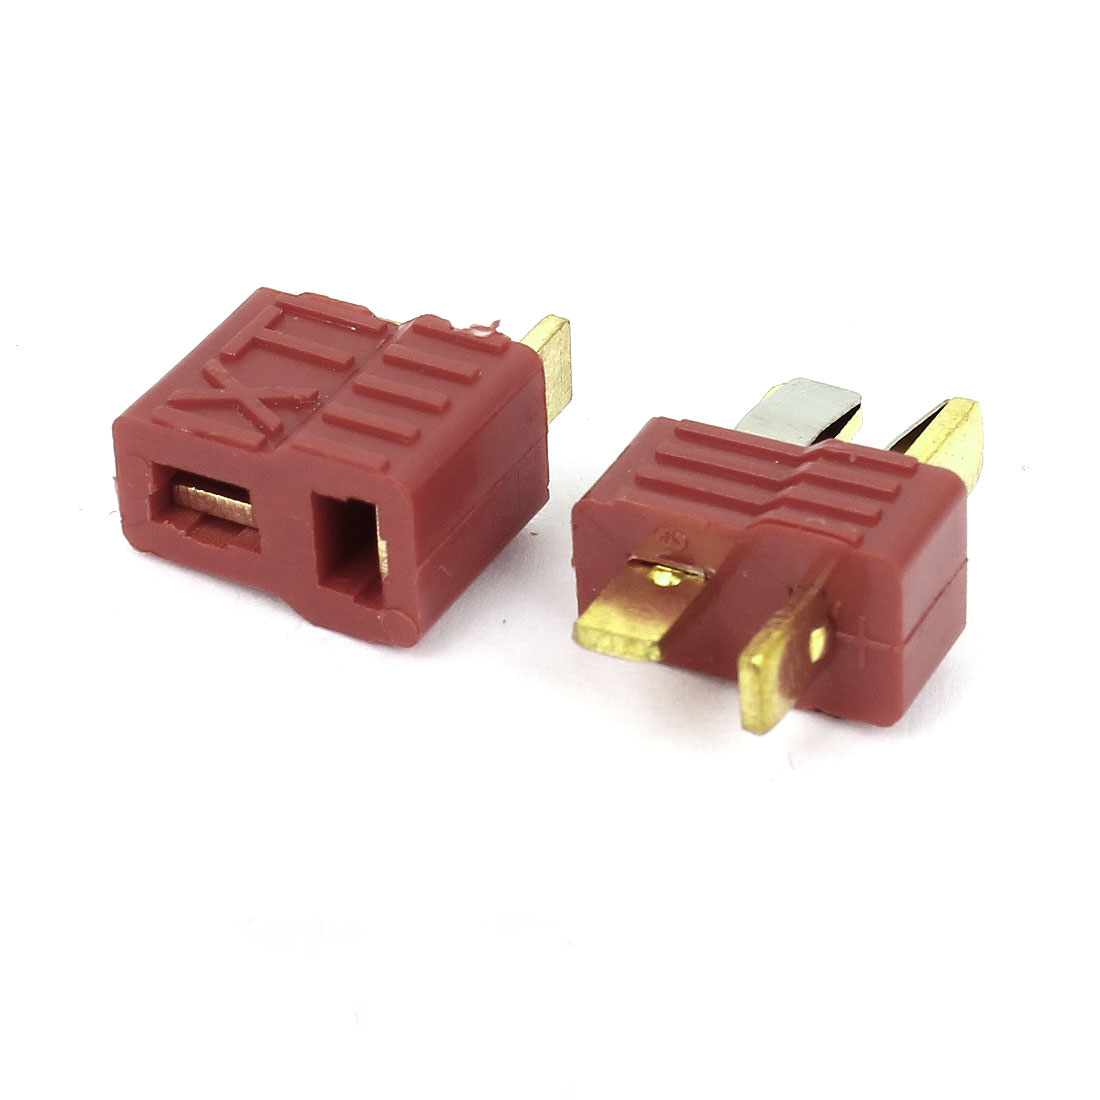 Red Plastic RC Model Toy Battery T Plug Male and Female Connector